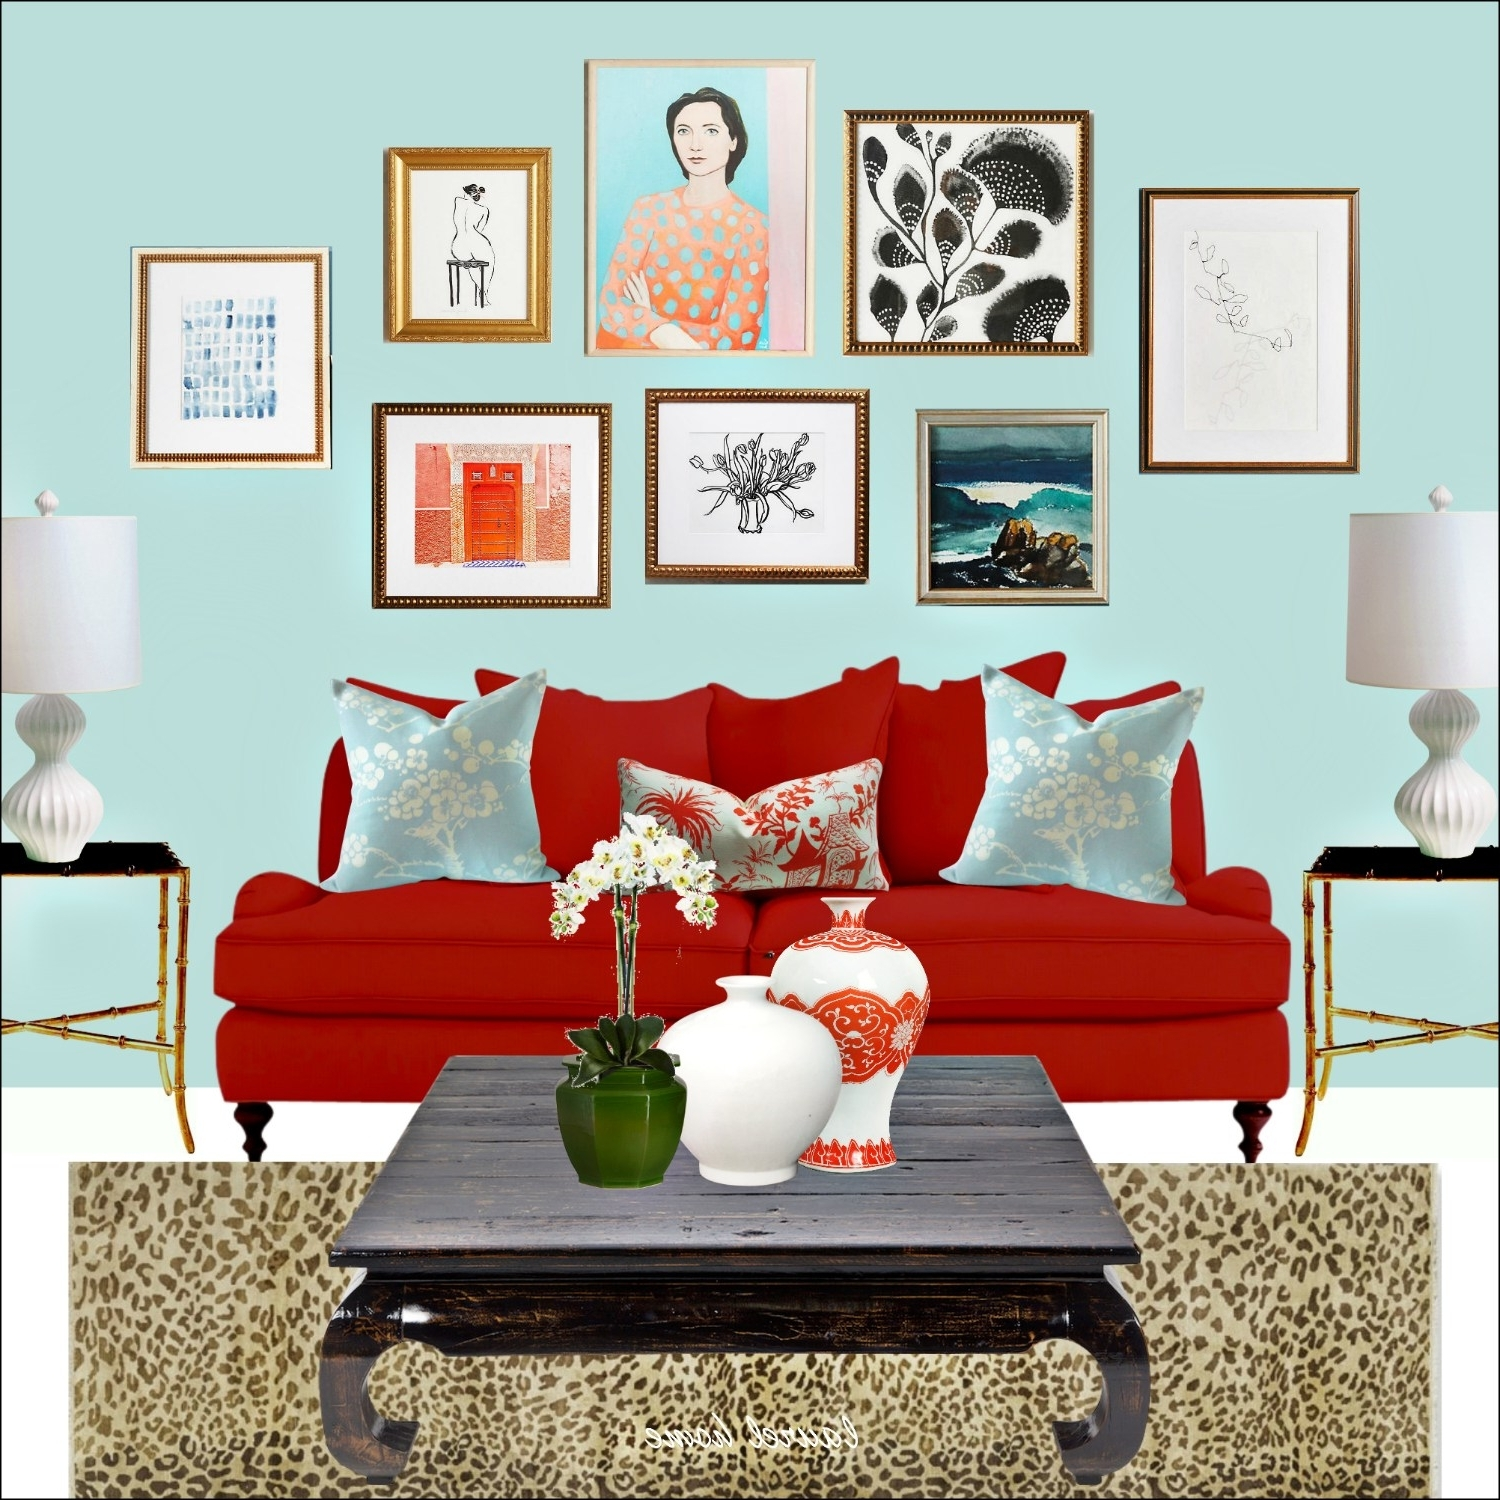 Artfully Walls Intended For Most Popular Anthropologie Art Wall With Artfully Walls Art And Red Sofa And (View 5 of 15)